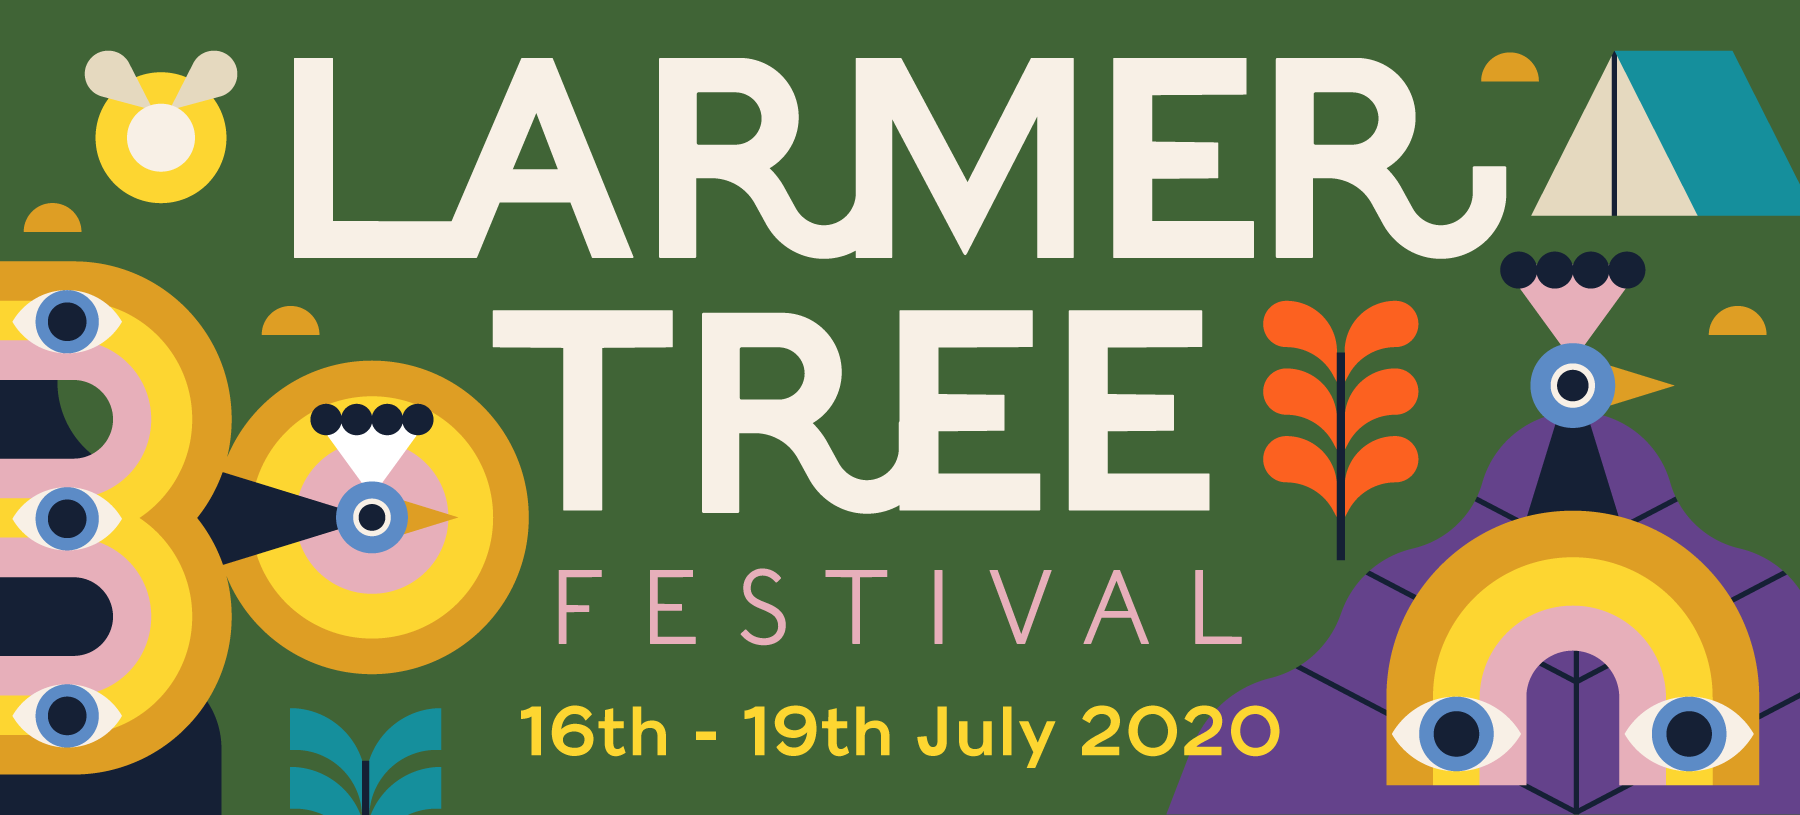 Larmer Tree Festival - 16th - 19th July 2020